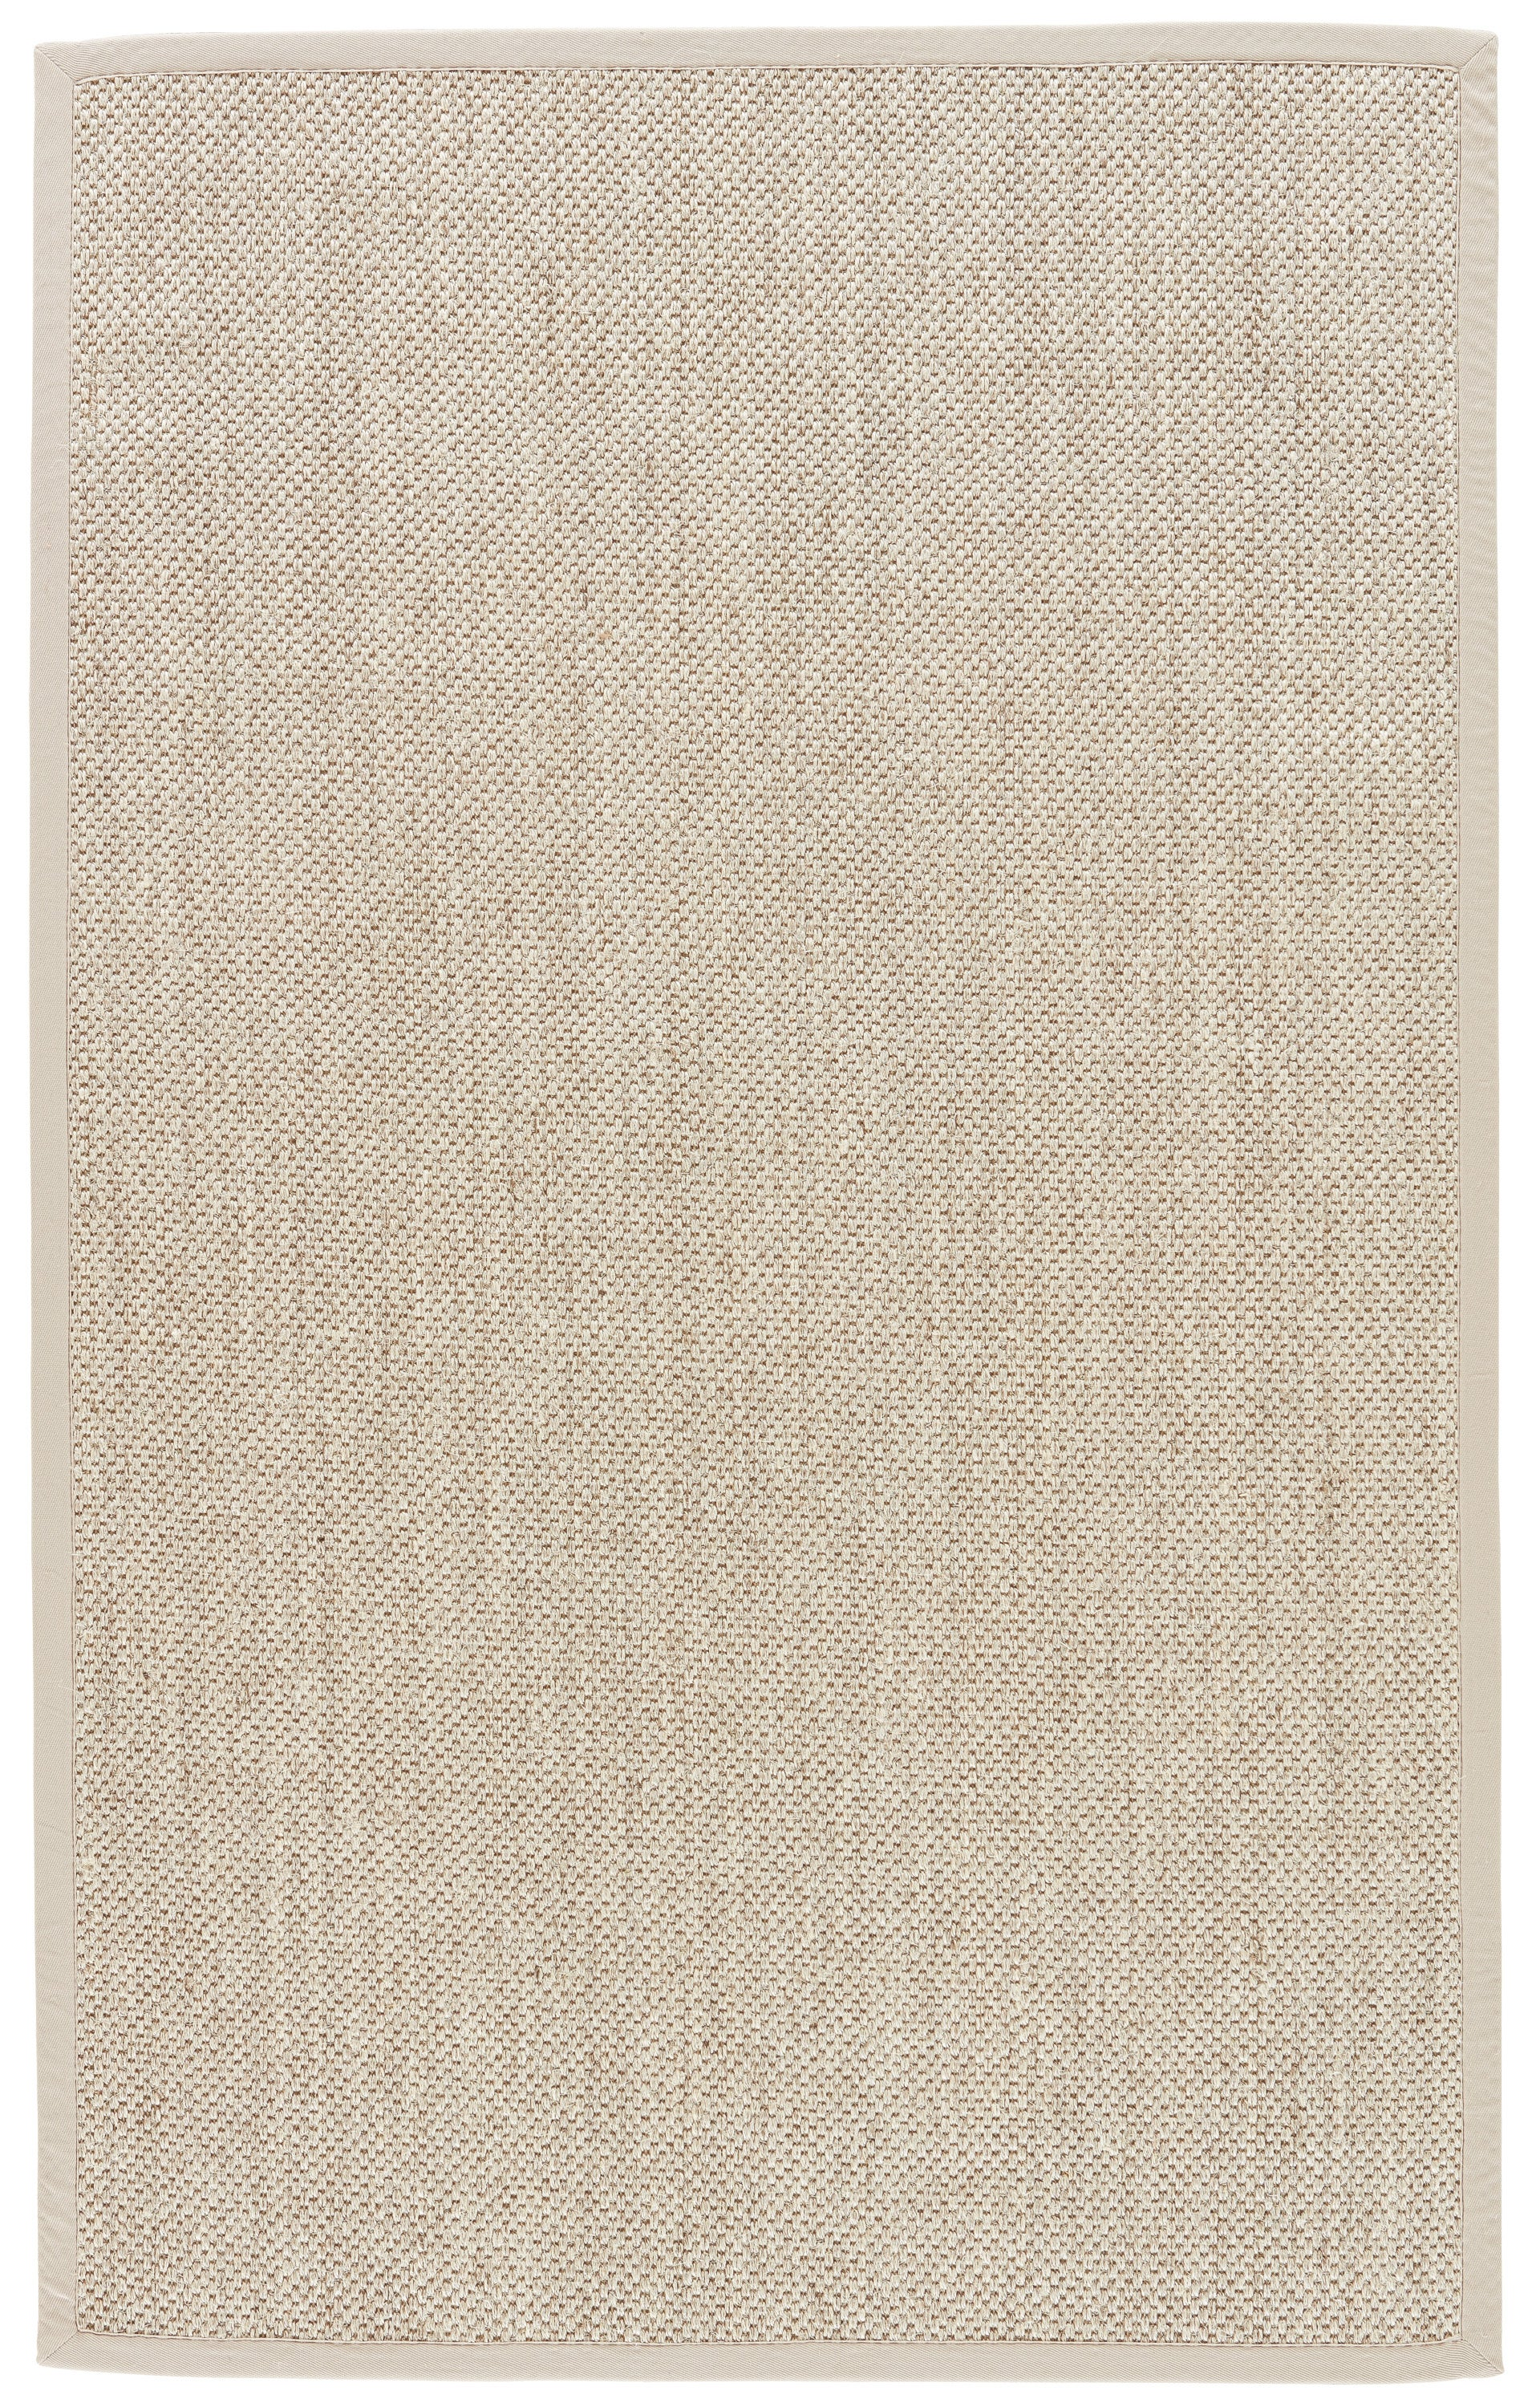 Rectangle Beige Solid Hand Woven Jute & Natural Fibers Casual recommended for Bedroom, Bathroom, Dining Room, Office, Hallway, Living Room